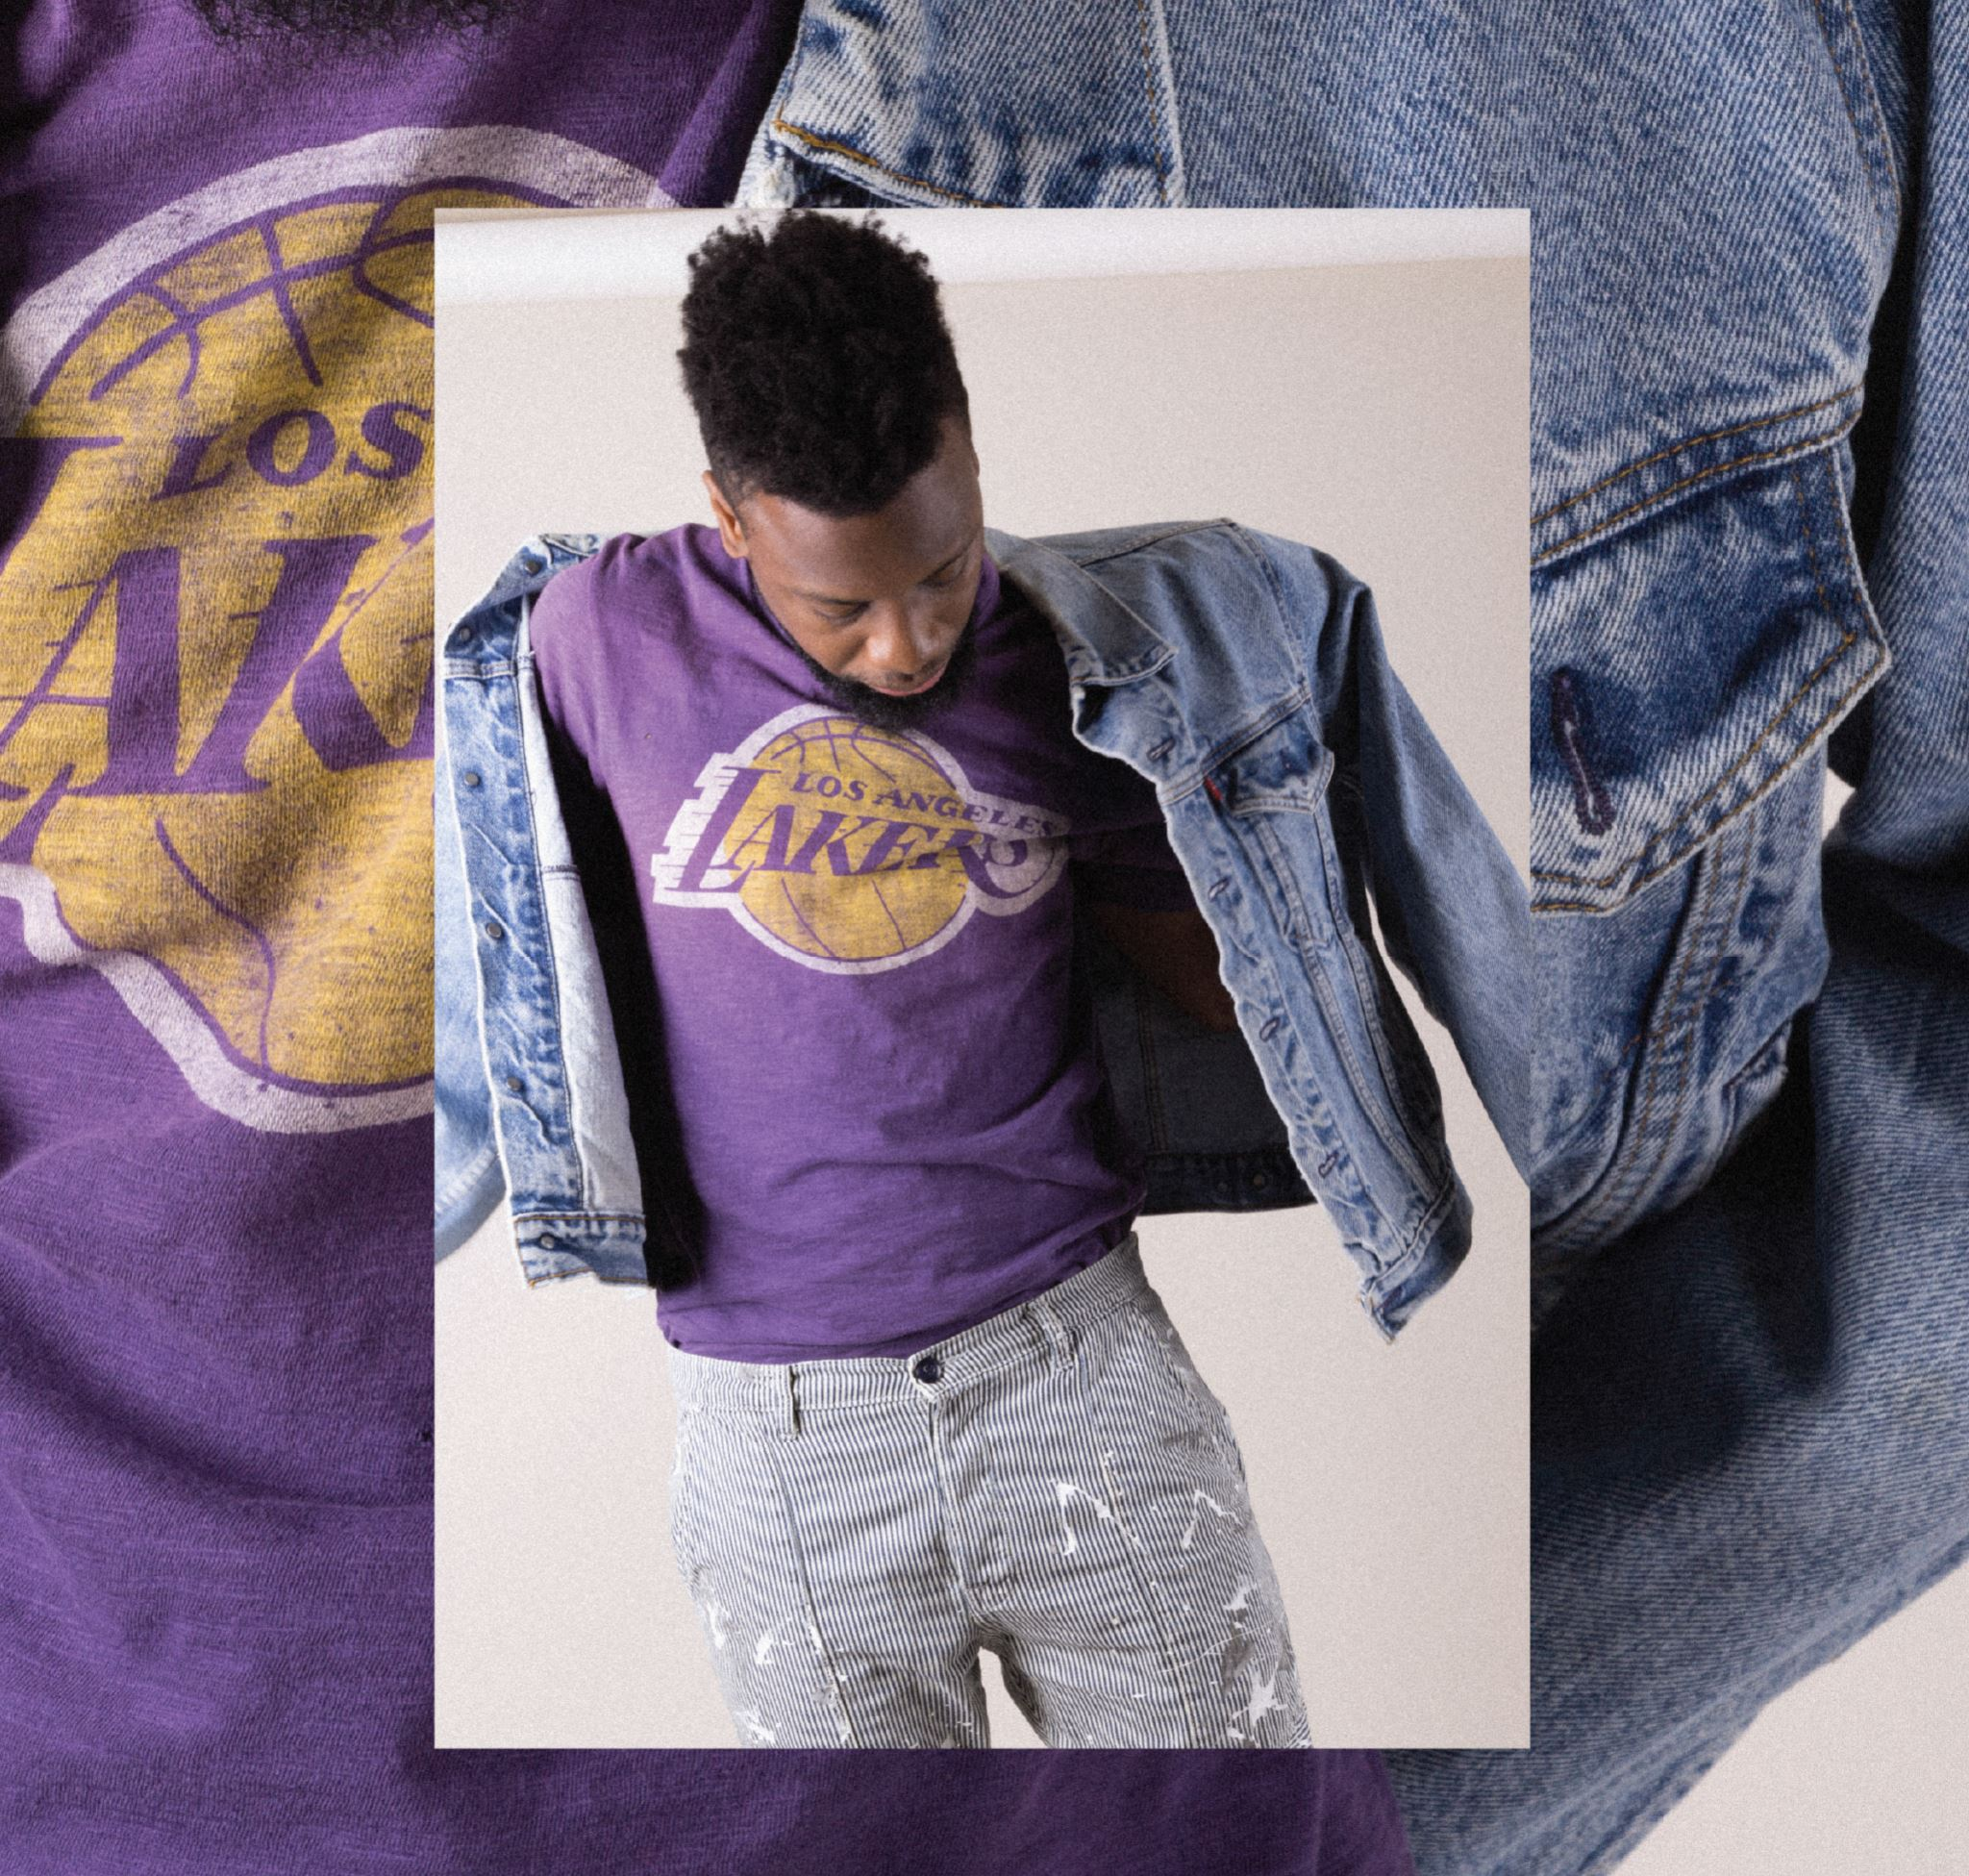 47 dye house collection lakers